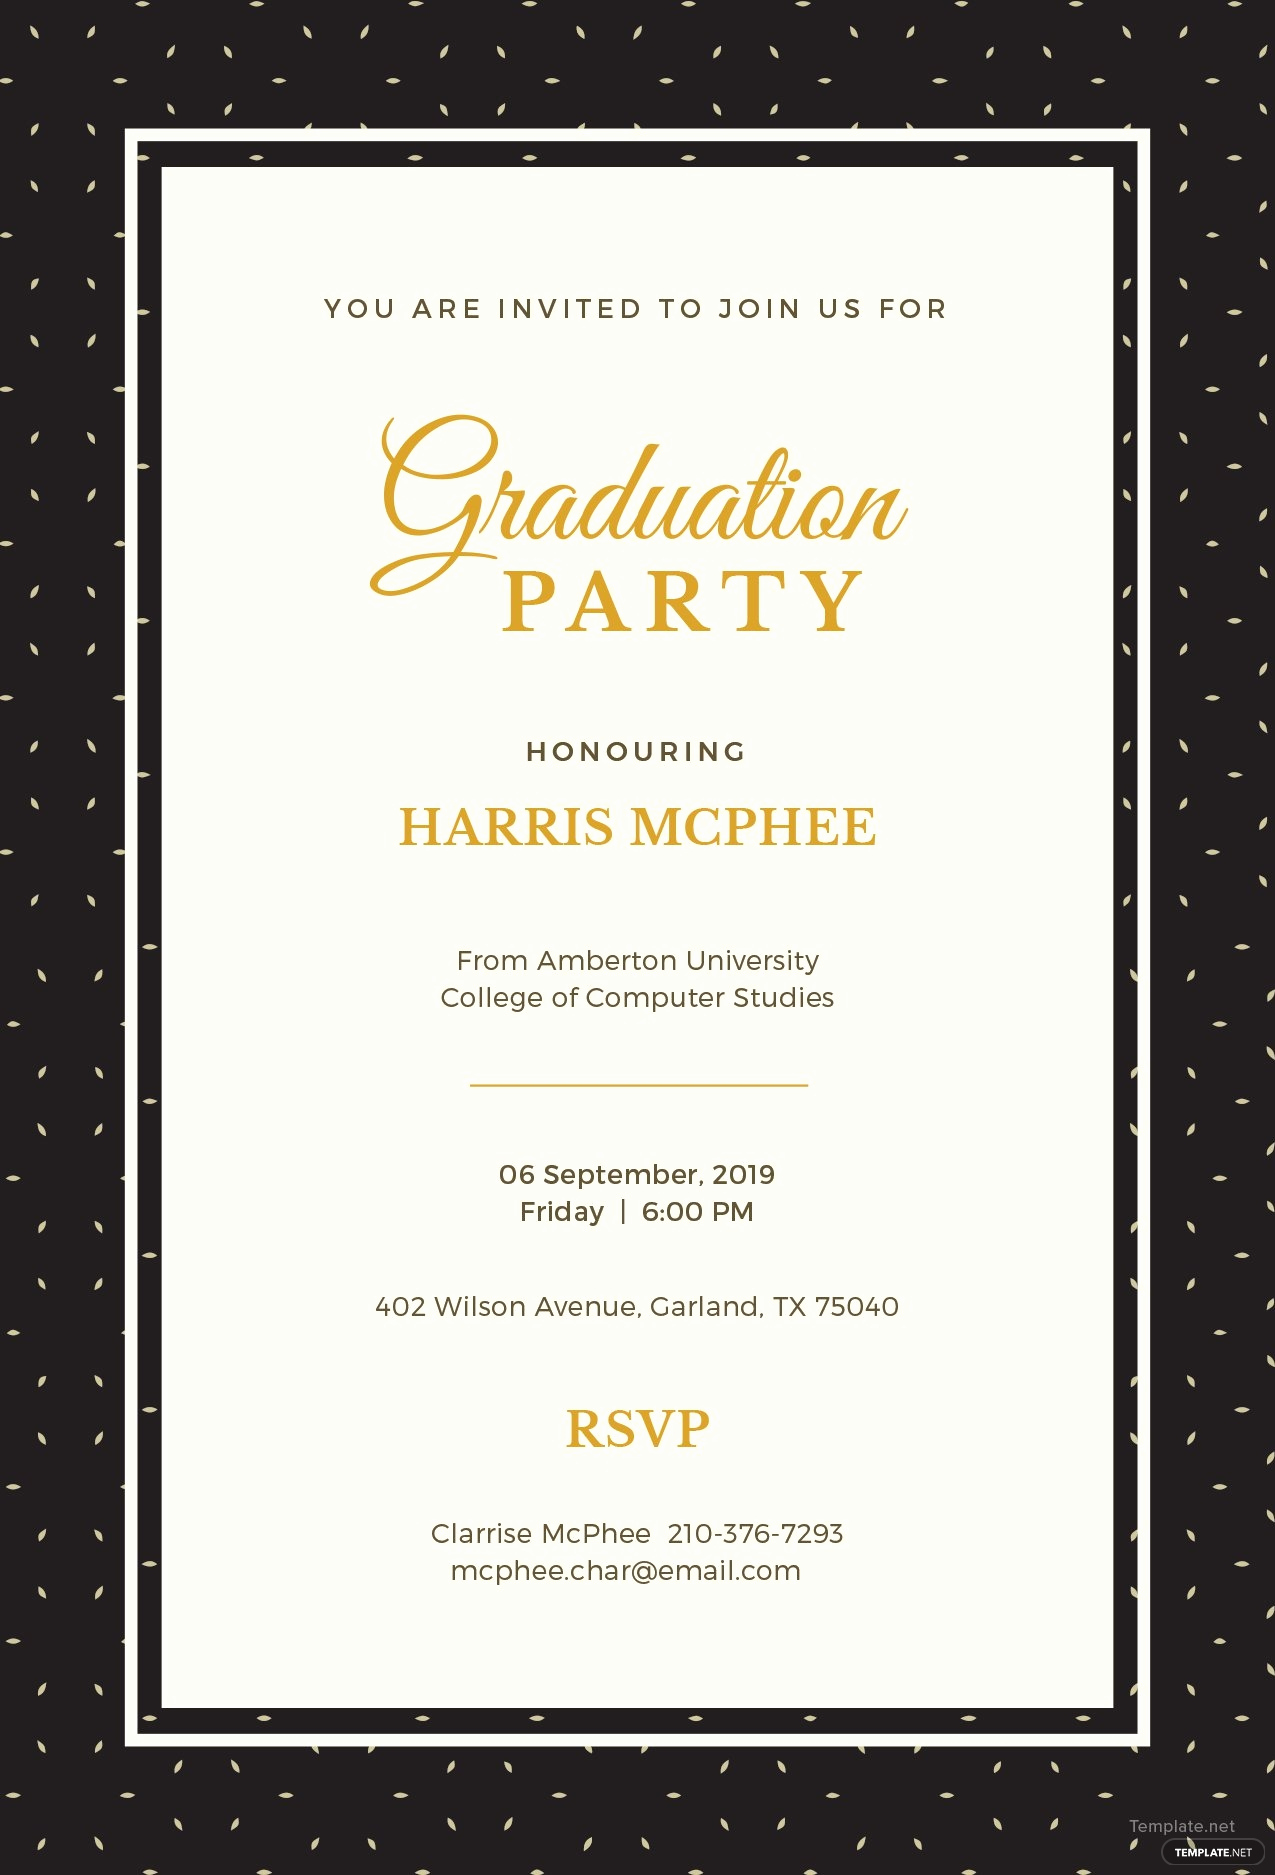 Graduation Invitation Templates Free Download Beautiful Free Graduation Invitation Template In Adobe Shop